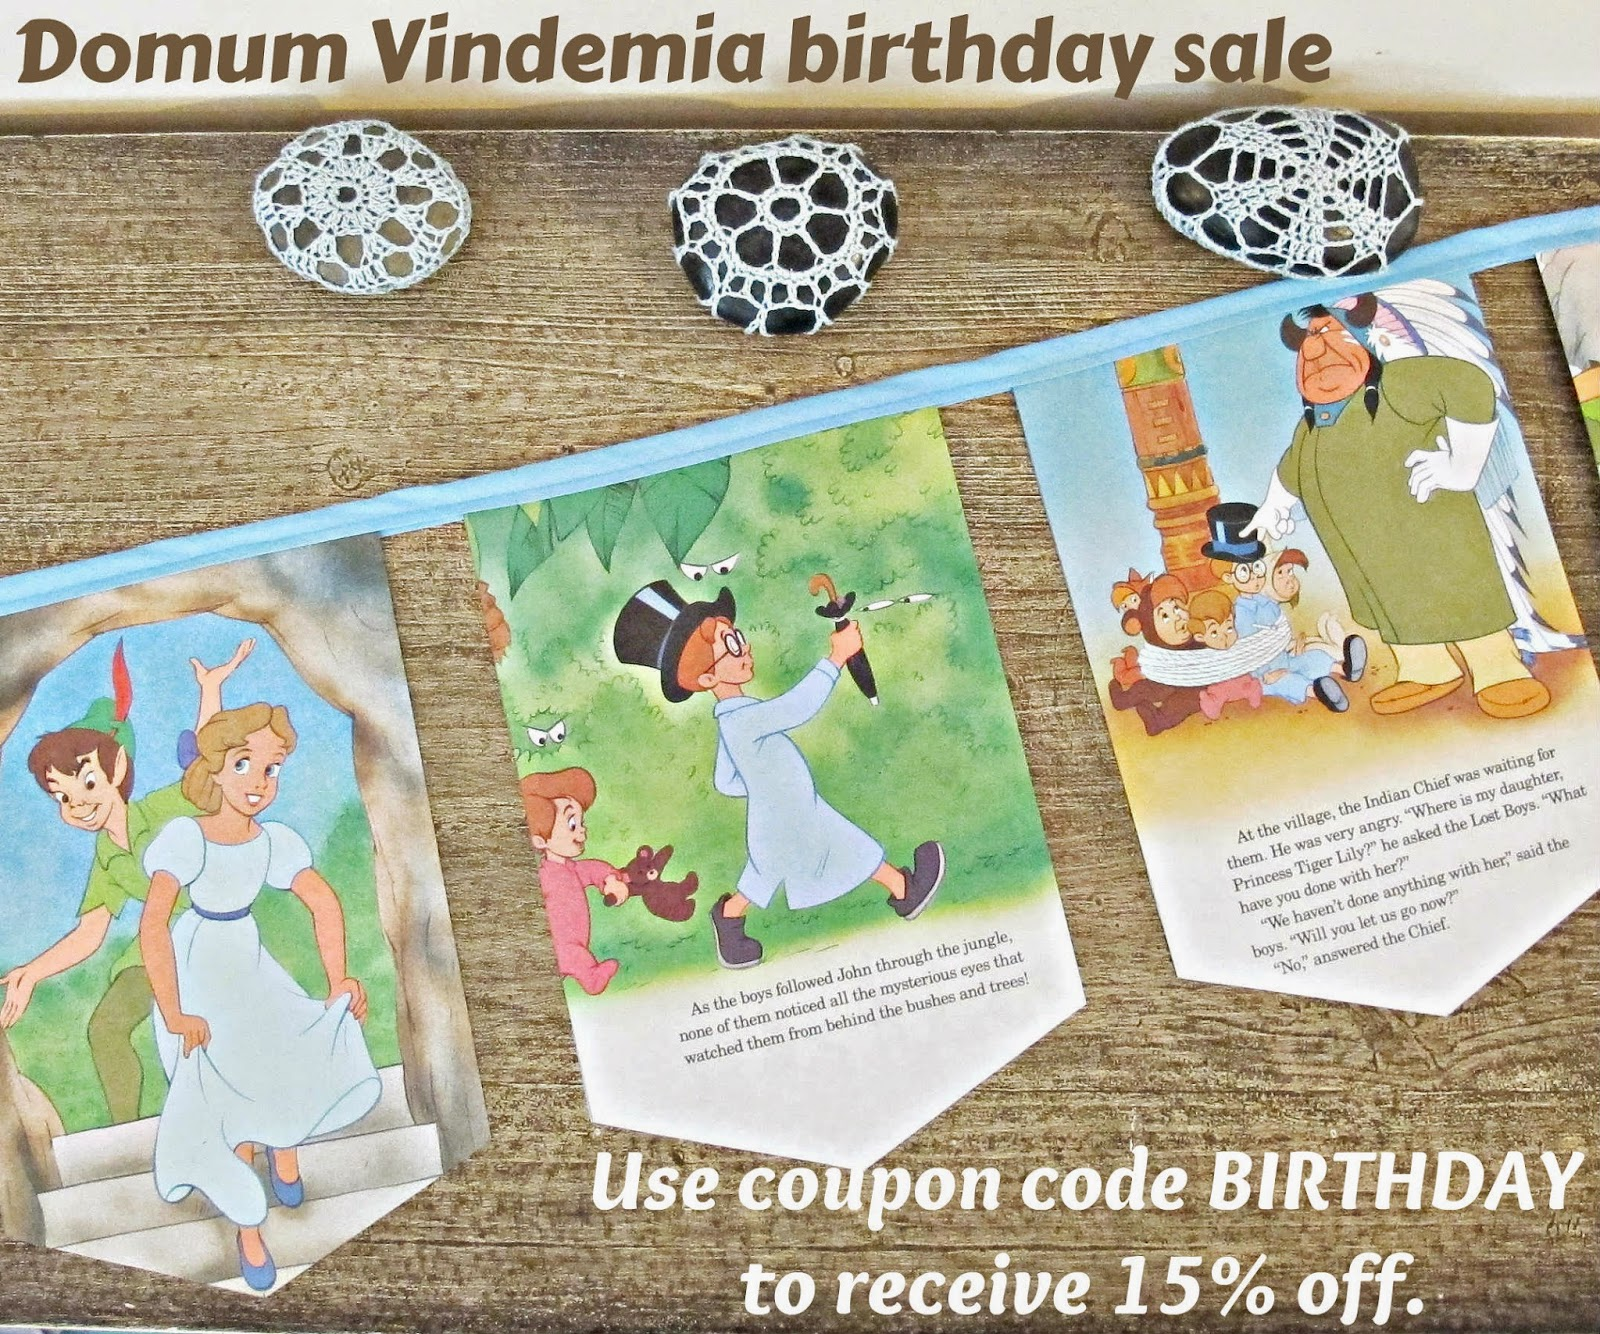 image domum vindemia birthday discount peter pan bunting